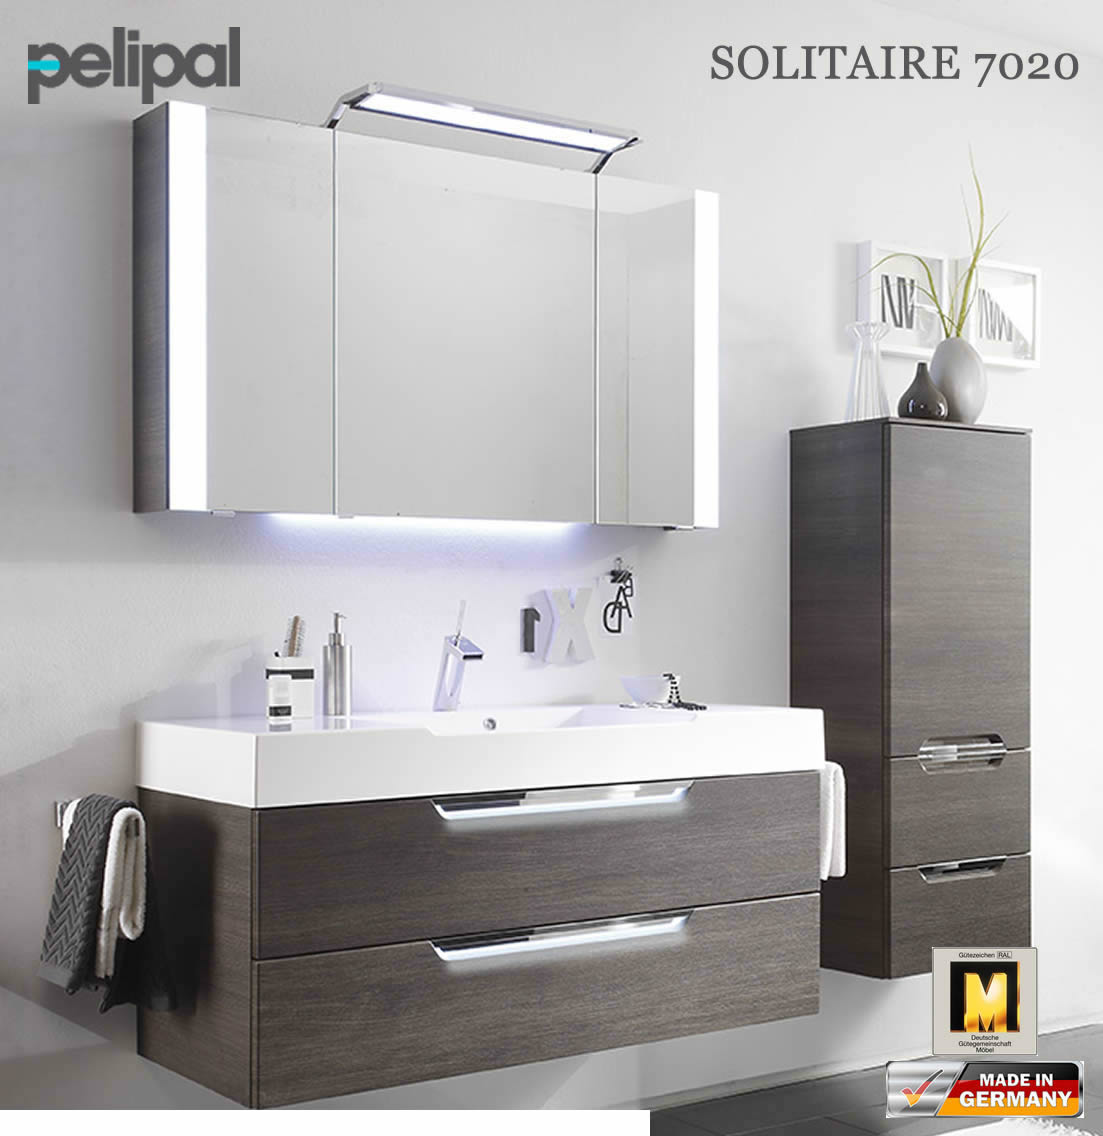 pelipal solitaire 7020 badm bel set mit 1200 mm waschtisch v2 6 impuls home. Black Bedroom Furniture Sets. Home Design Ideas